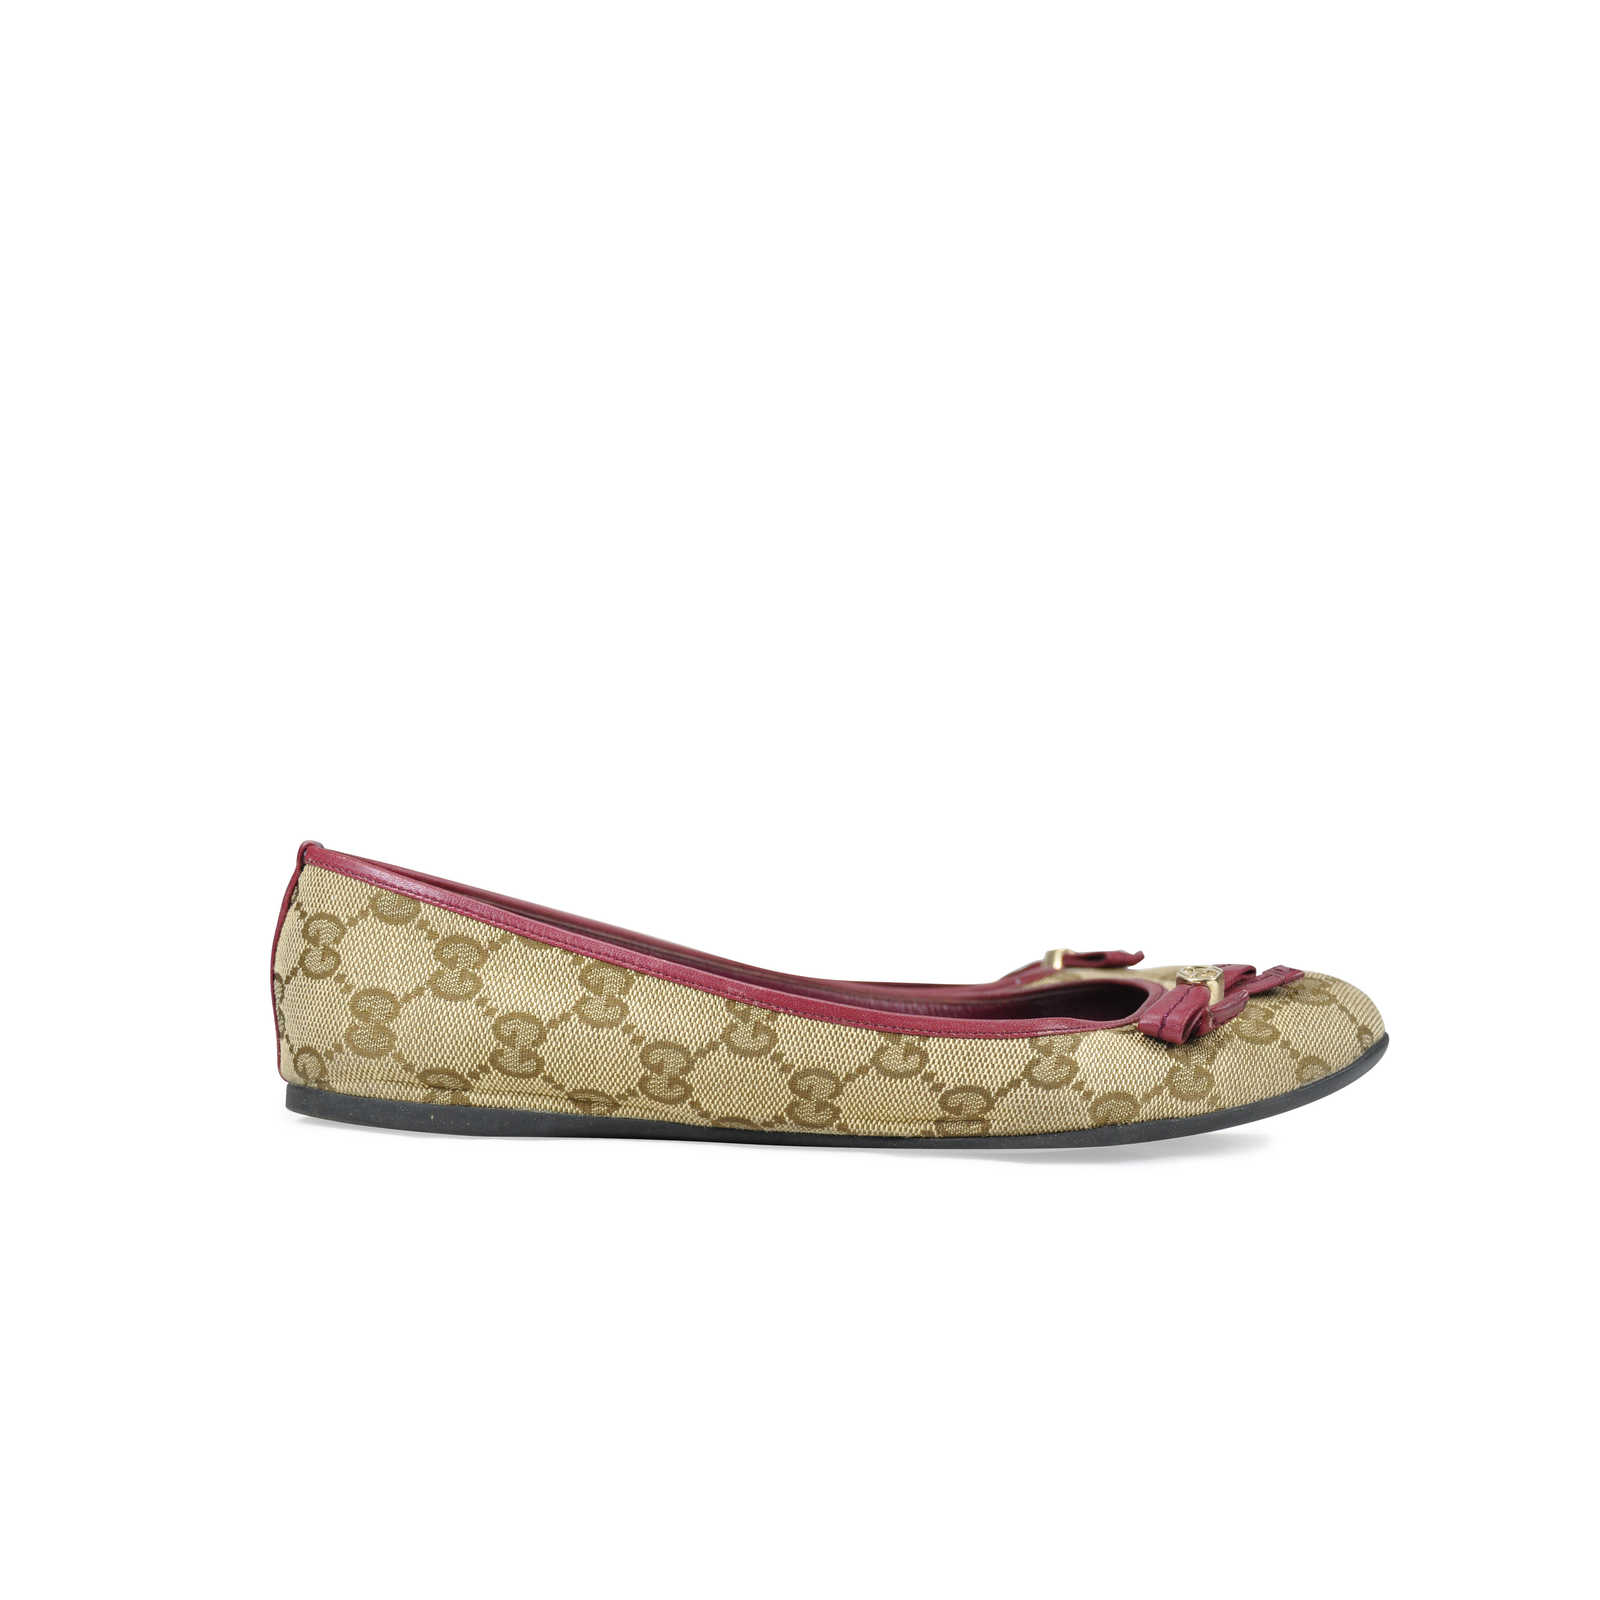 1e17a47f94711 ... Authentic Second Hand Gucci Monogram Flats (PSS-090-00008) - Thumbnail  1 ...